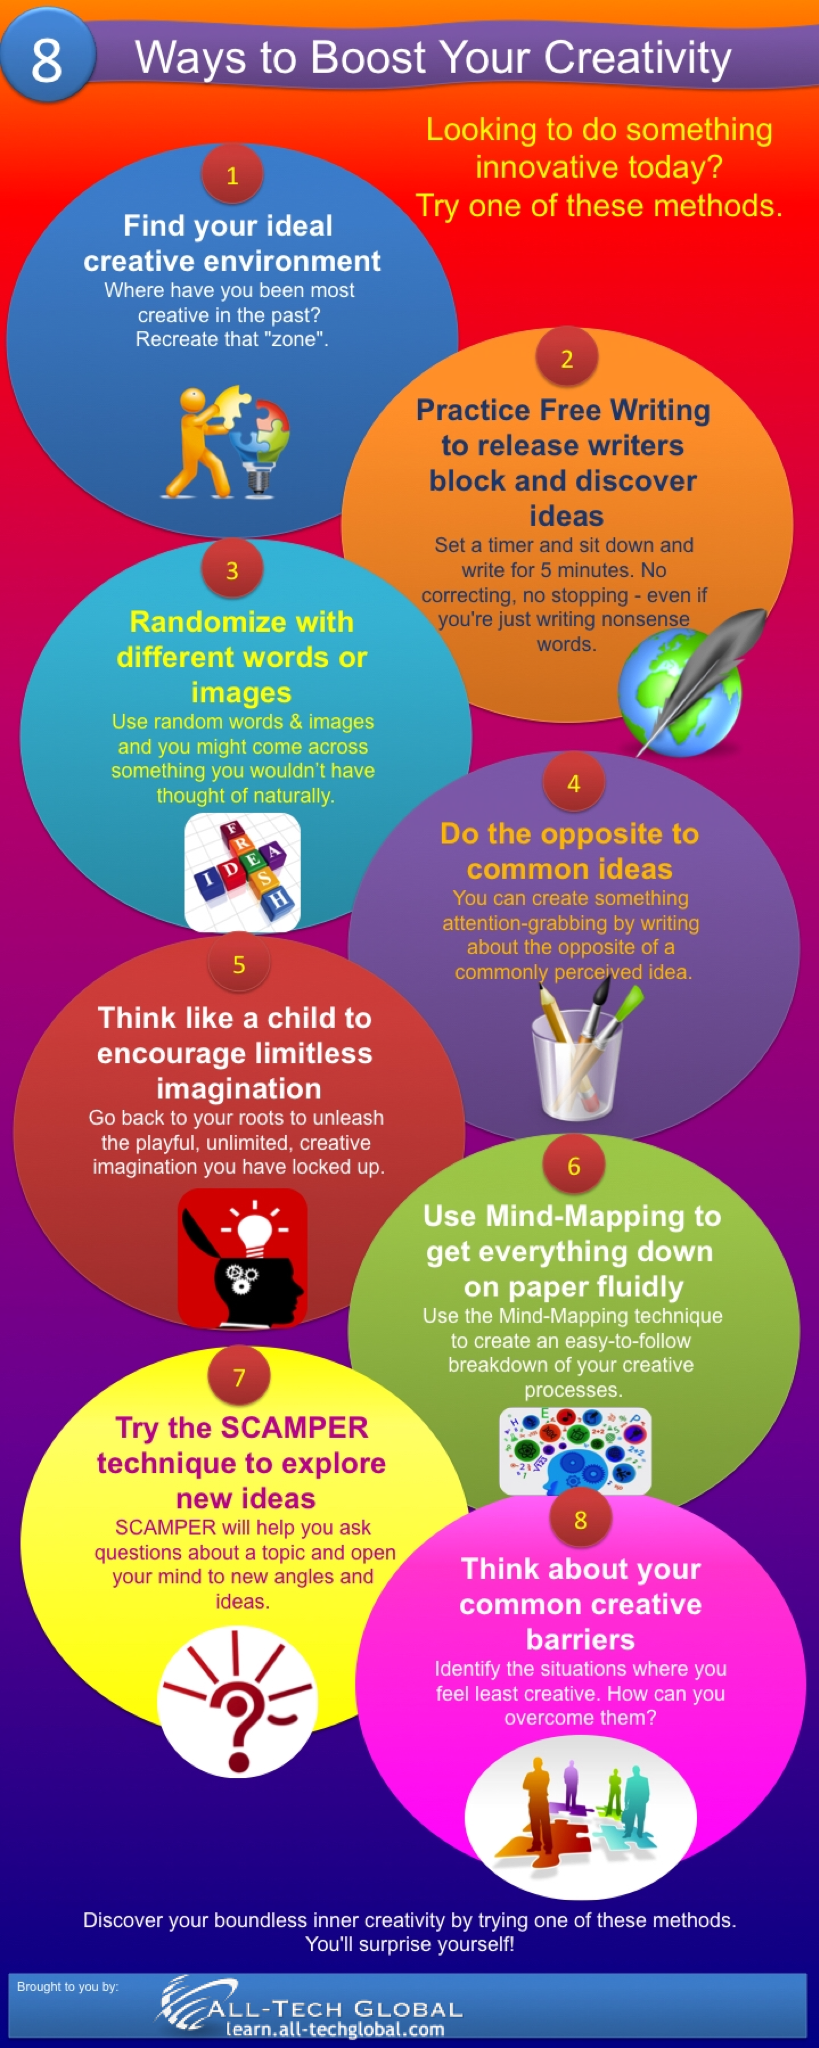 8 Ways to Boost Your Creativity Infographic